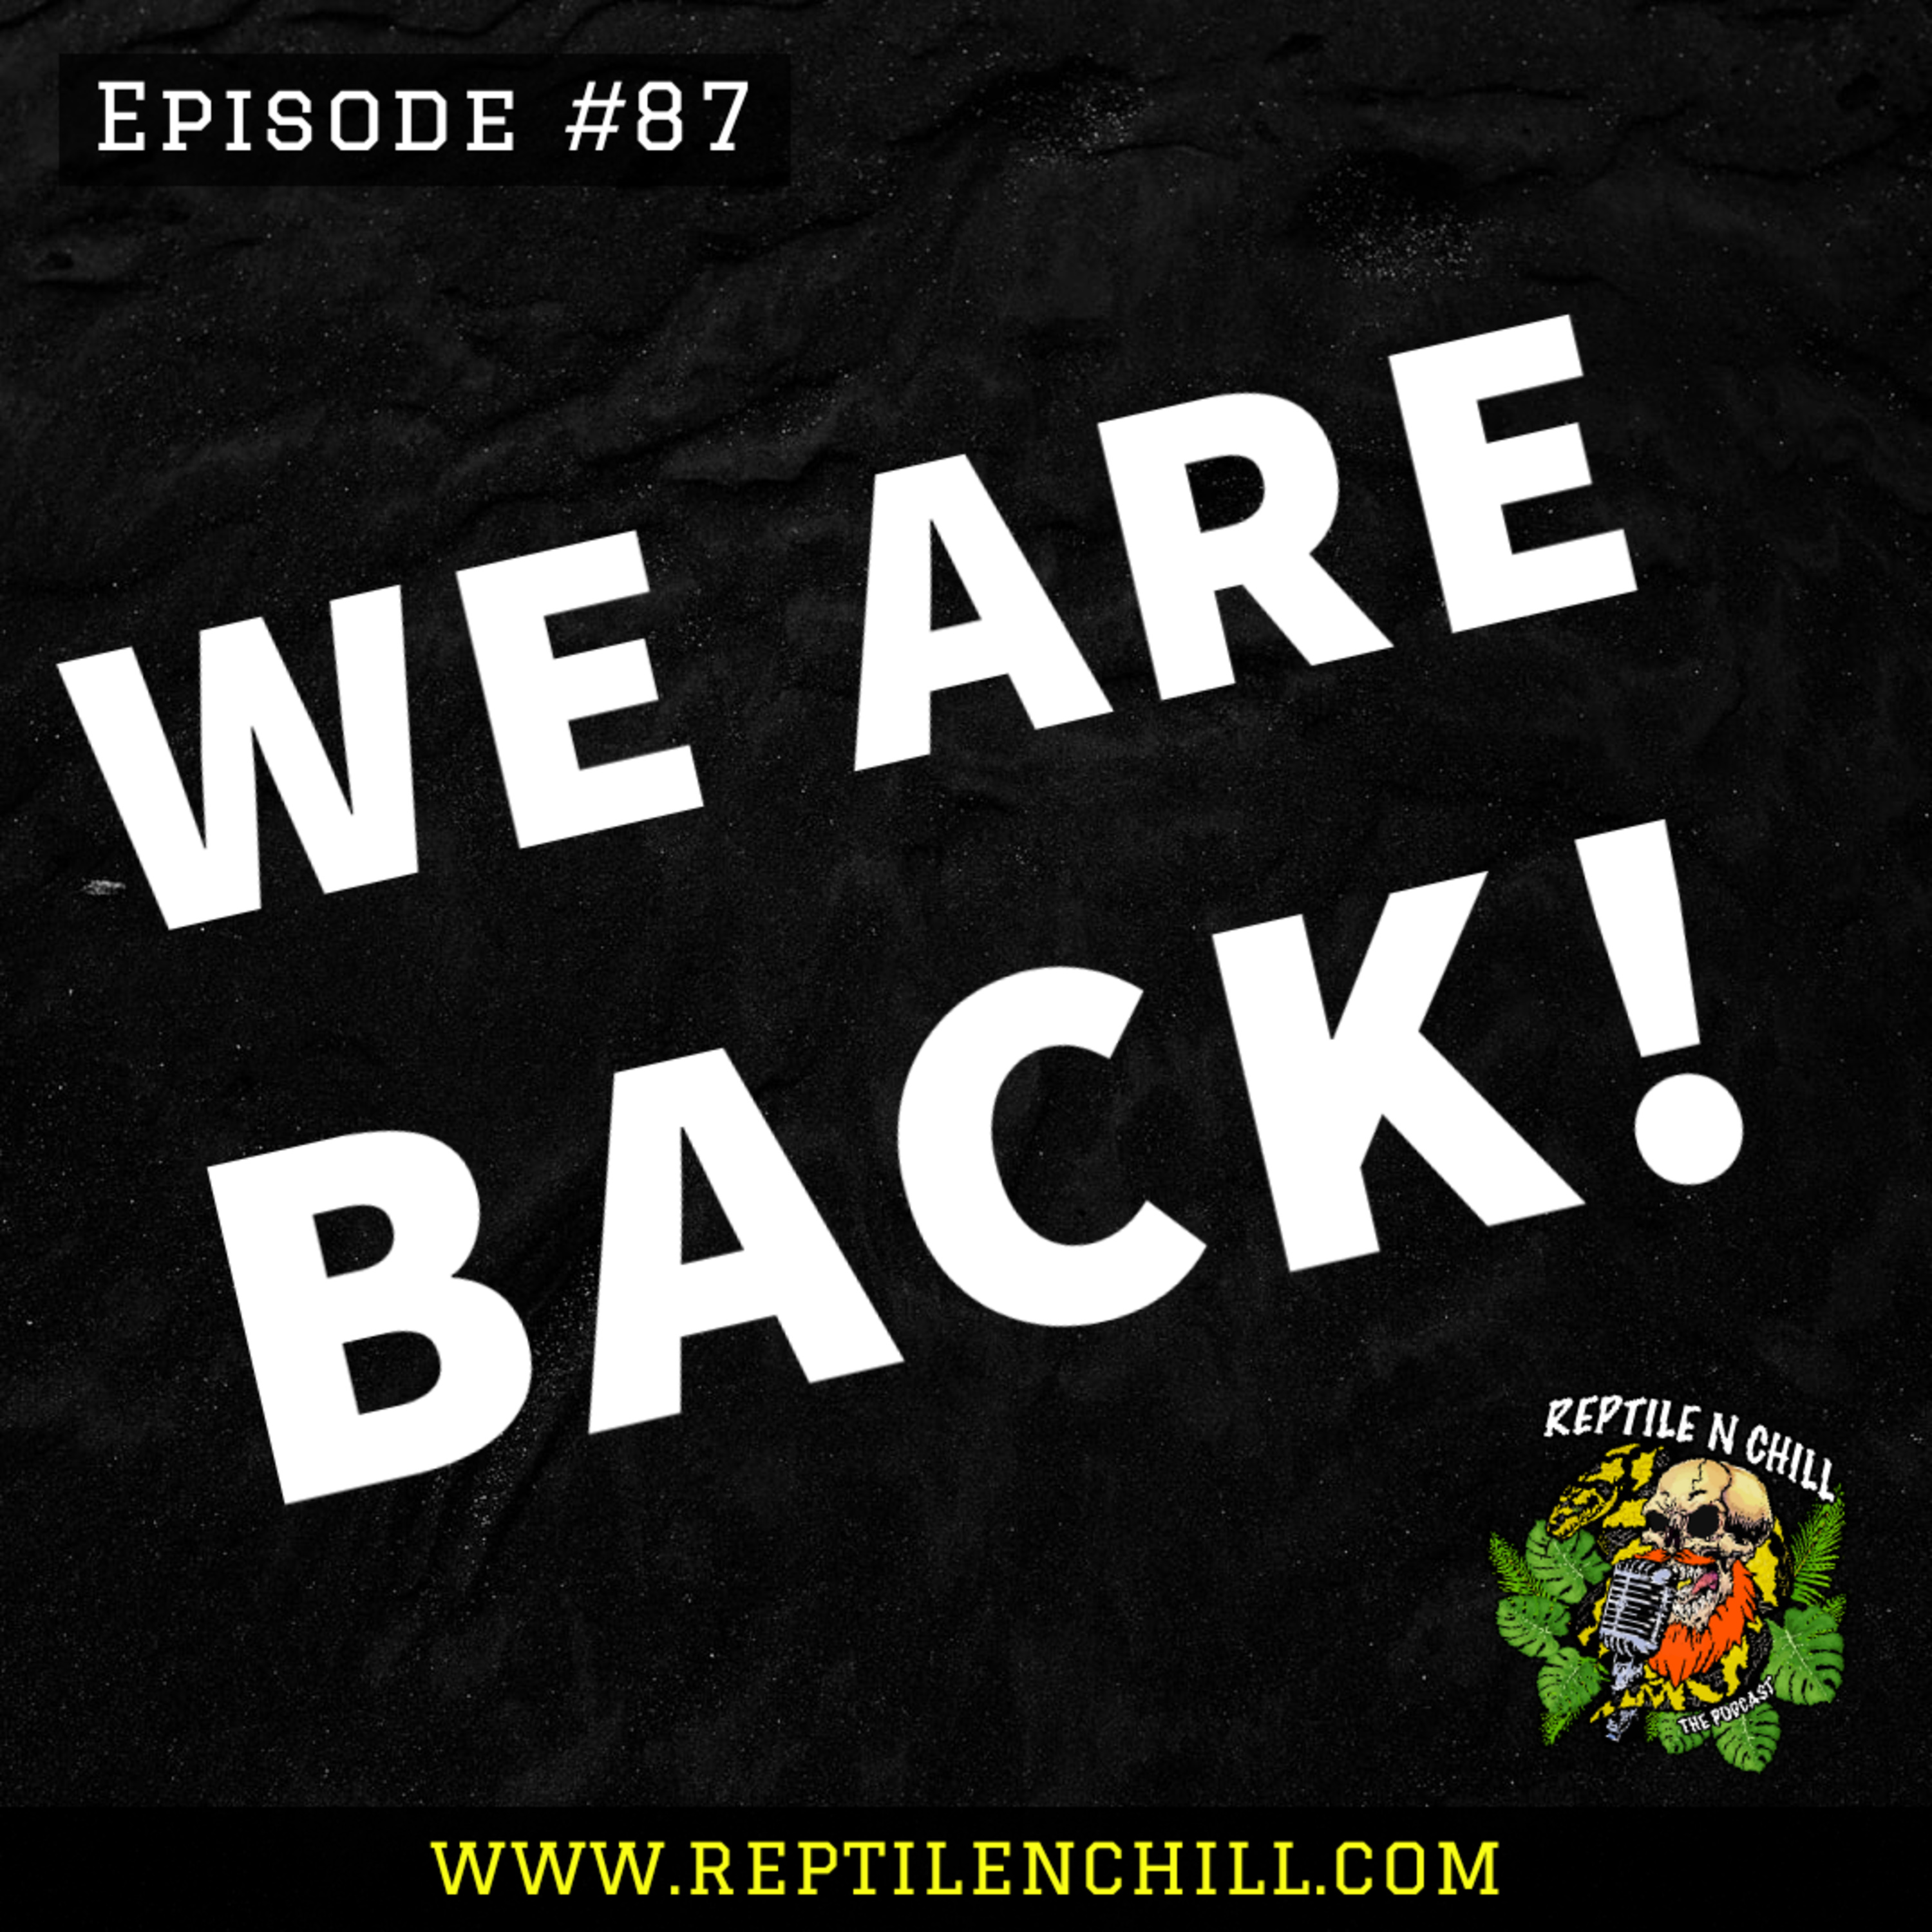 The boys are back in town! - 87 Reptile n Chill